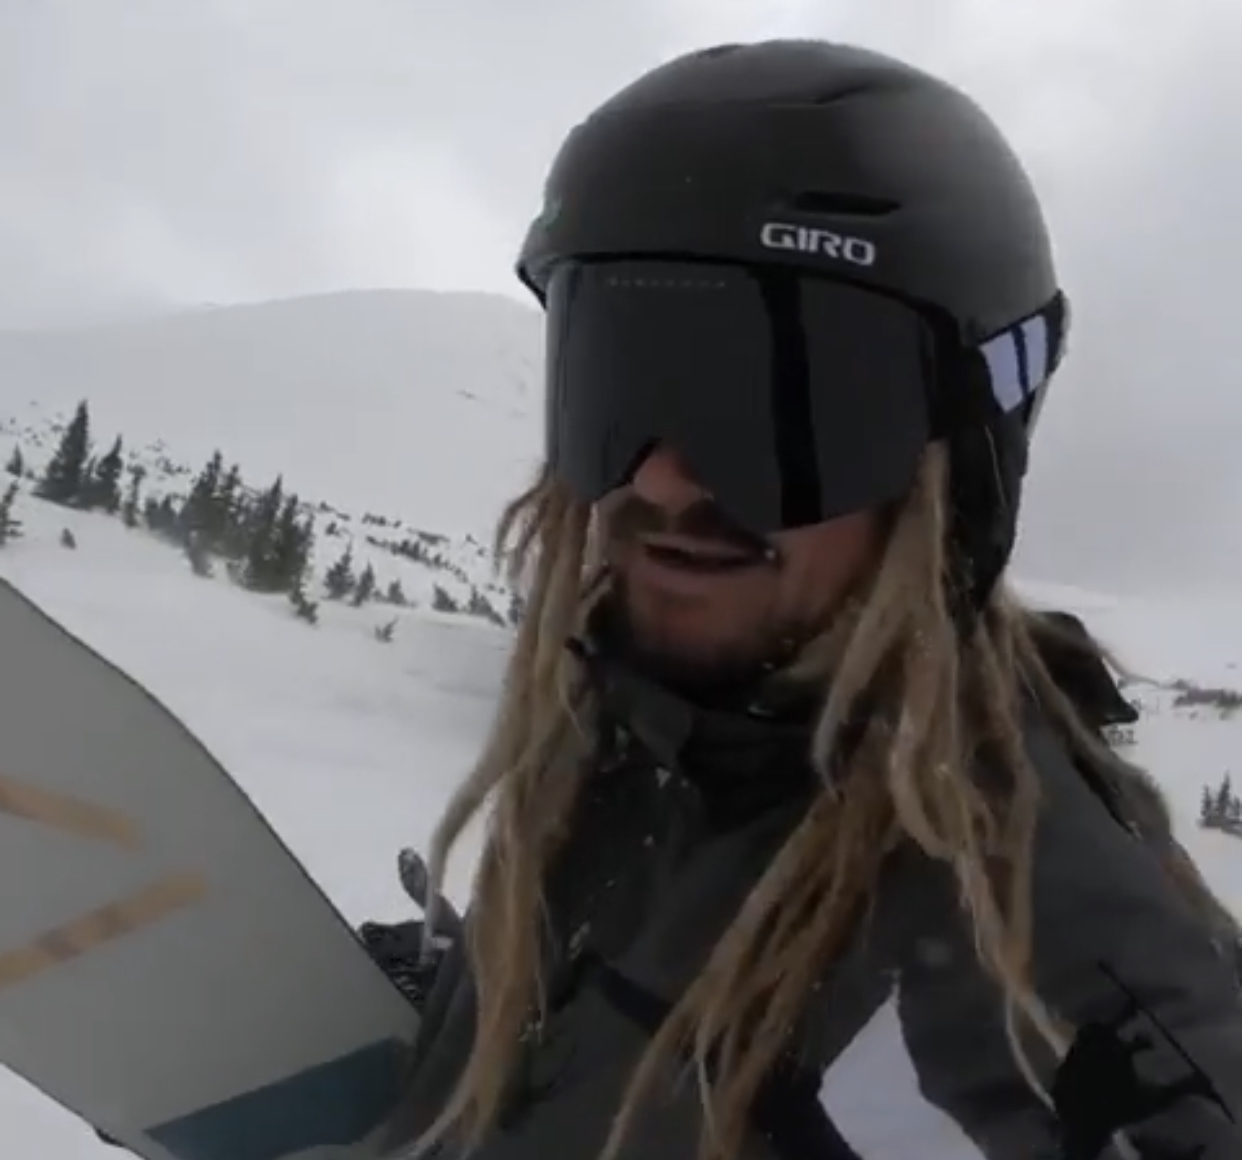 Austin Keen Professional Skimboarder Hits The pow pow in Breckenridge, Colorado